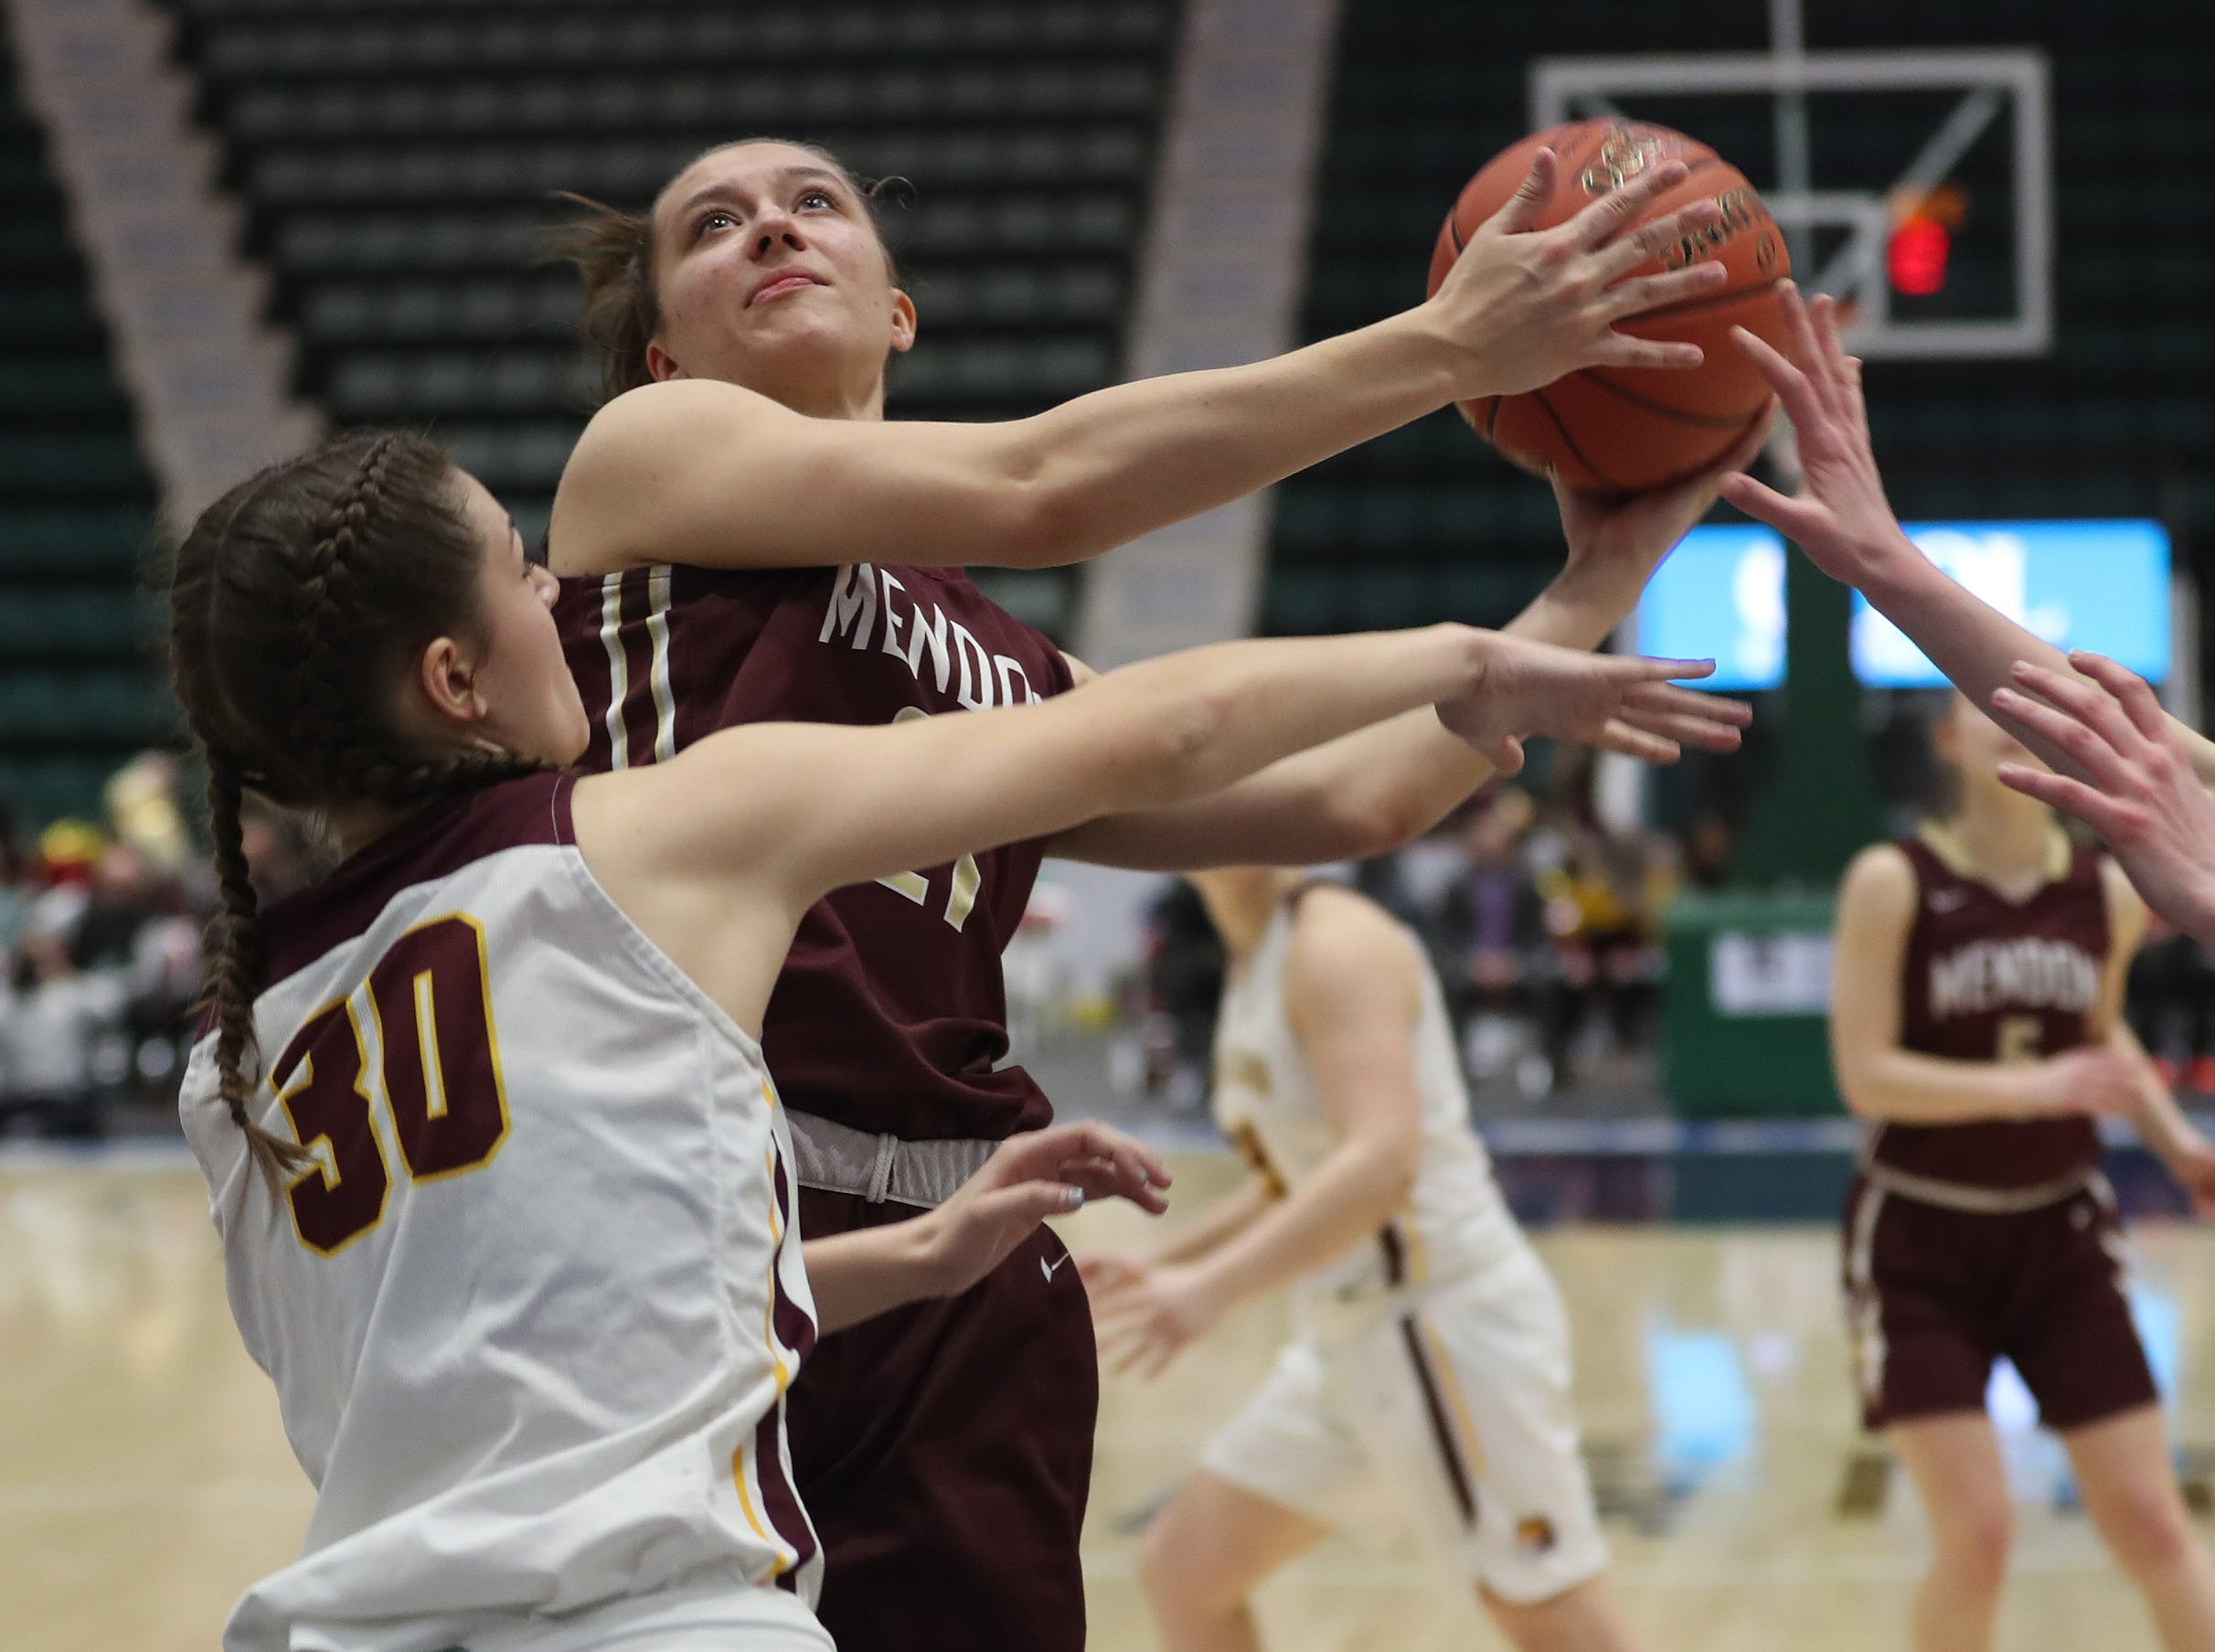 Pittsford Mendon's Alana Fursman (21) goes up for a shot against Staten Island in the championship game of the Federation Tournament at the Cool Insuring Arena in Glens Falls March 23, 2019.